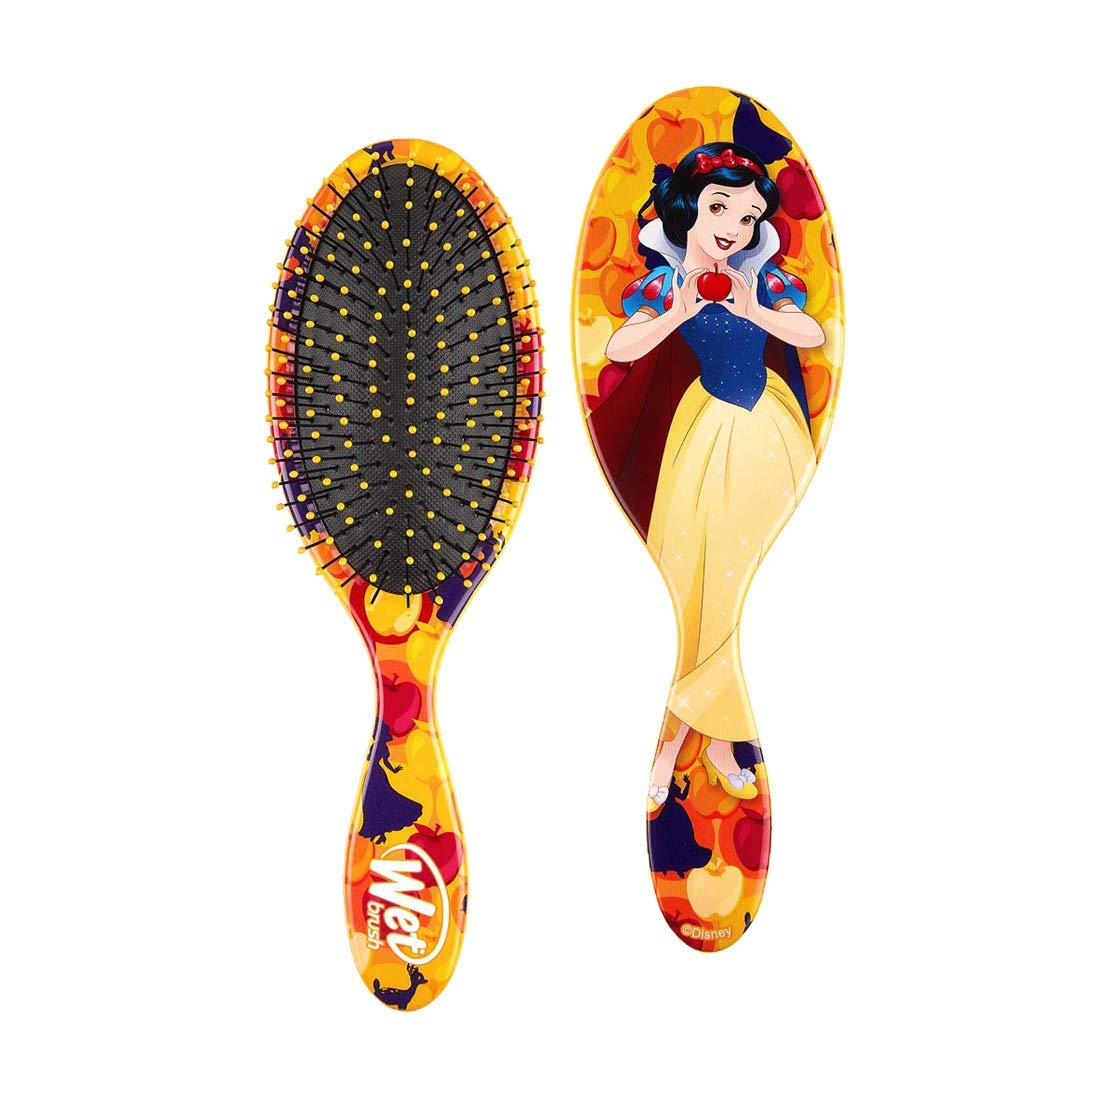 Wet Brush Original Detangler Disney Princess Collection - Snow White, 1 Ea, 1count